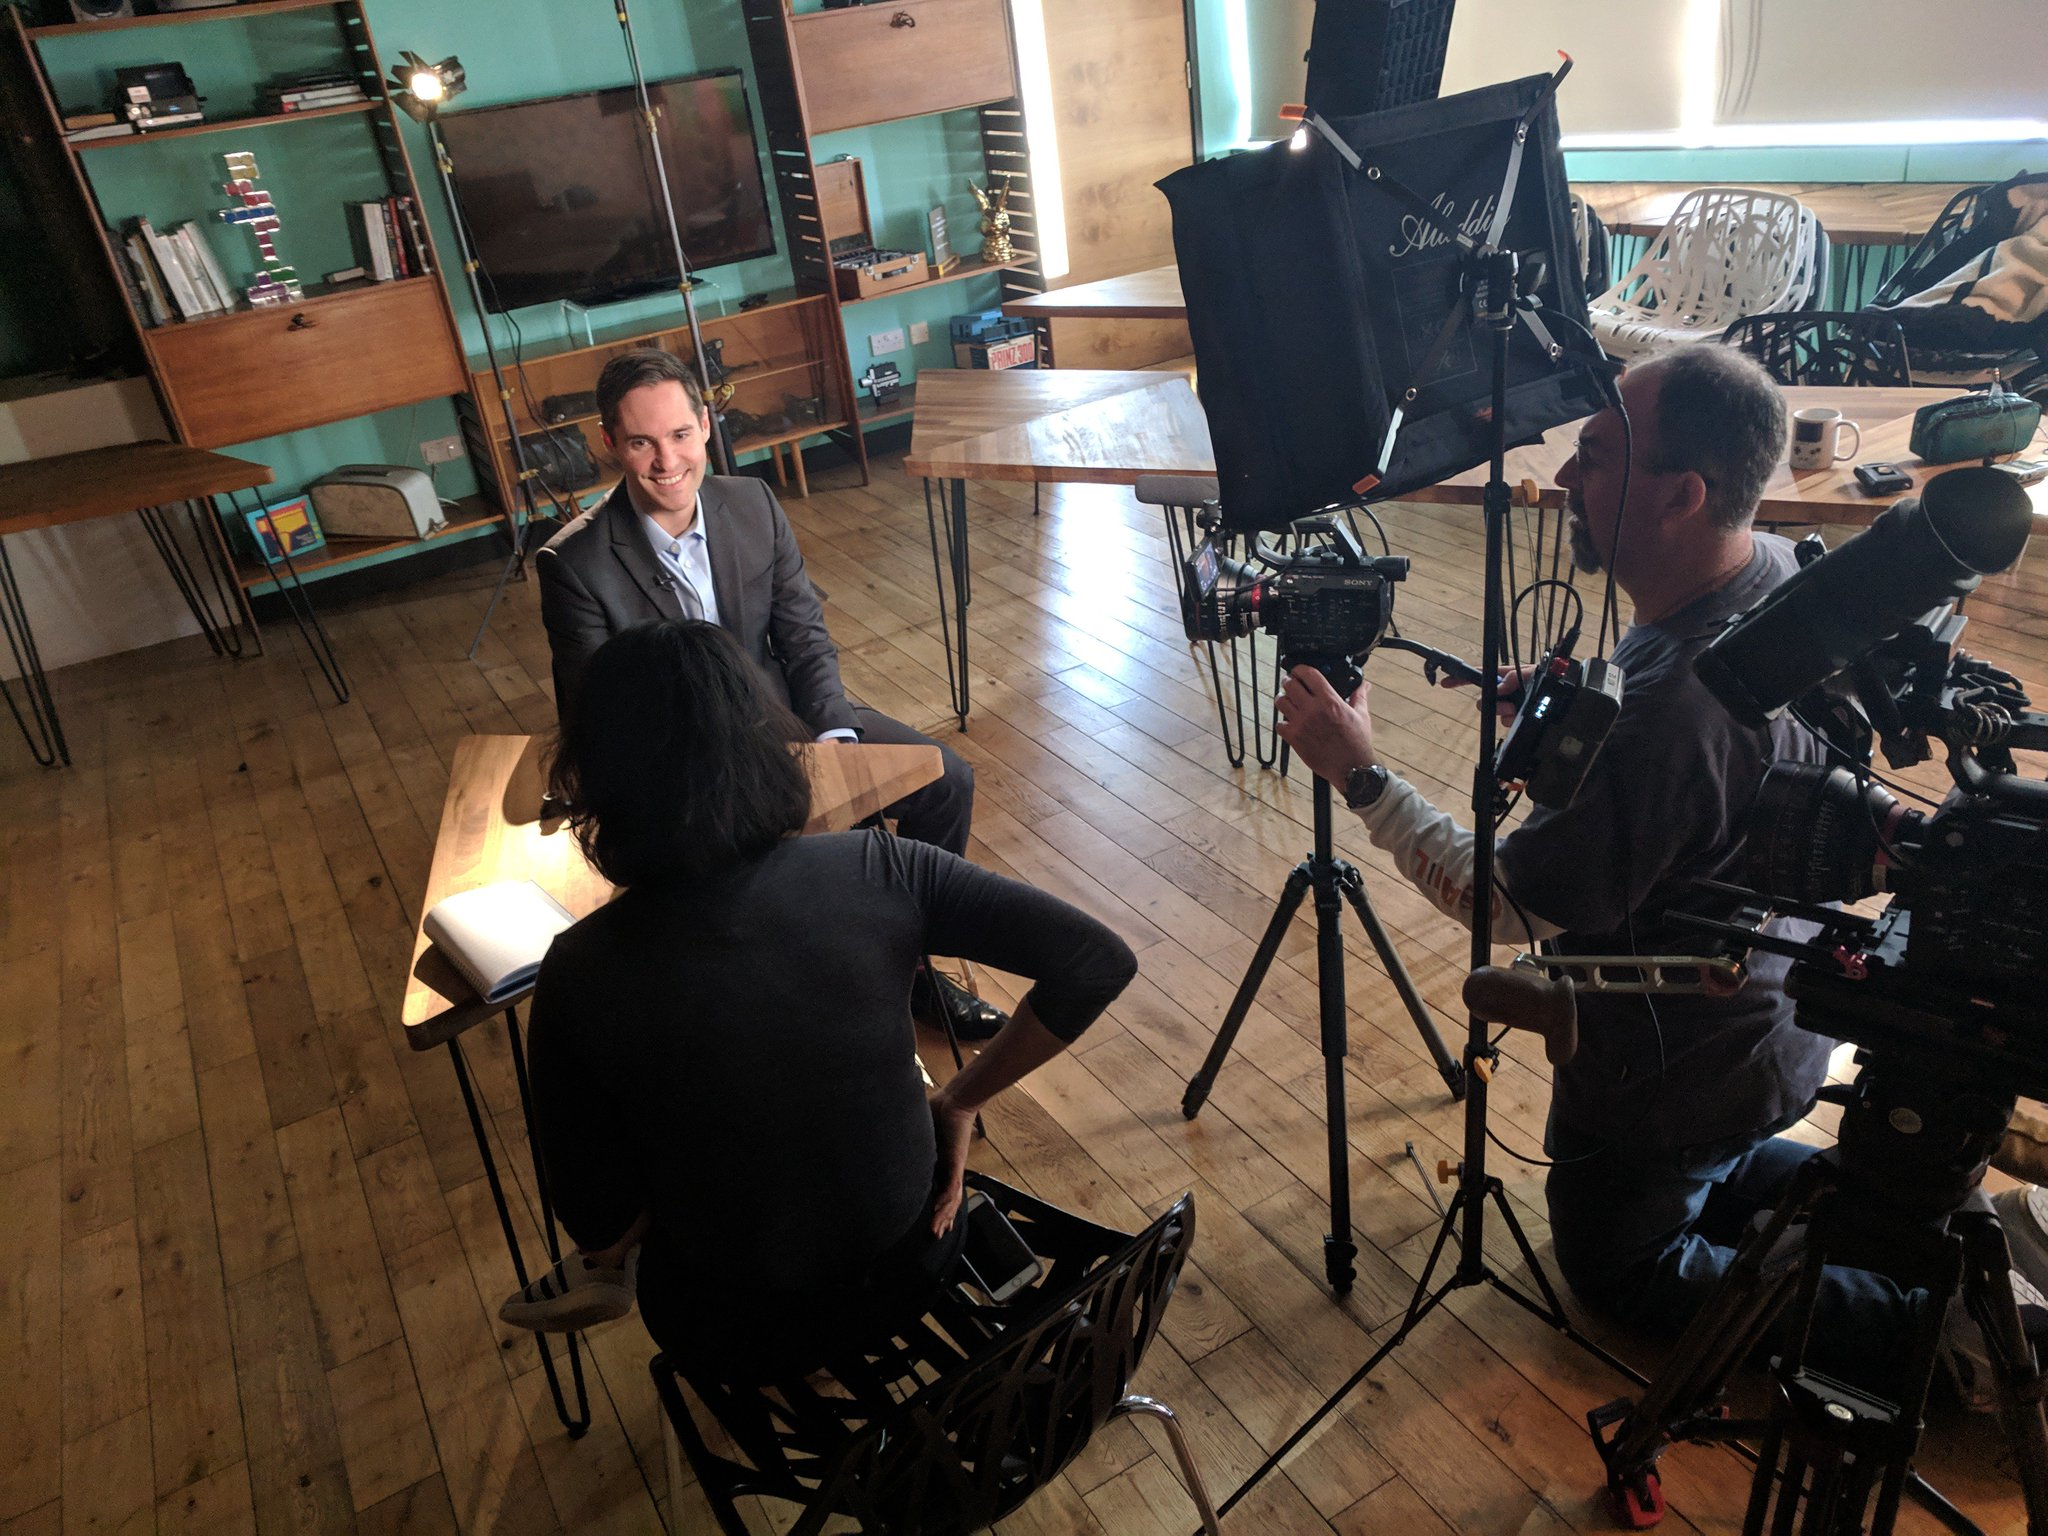 Neil interviewed in The Trampery for CNN Health's recent piece on how London is leading the rise of HealthTech